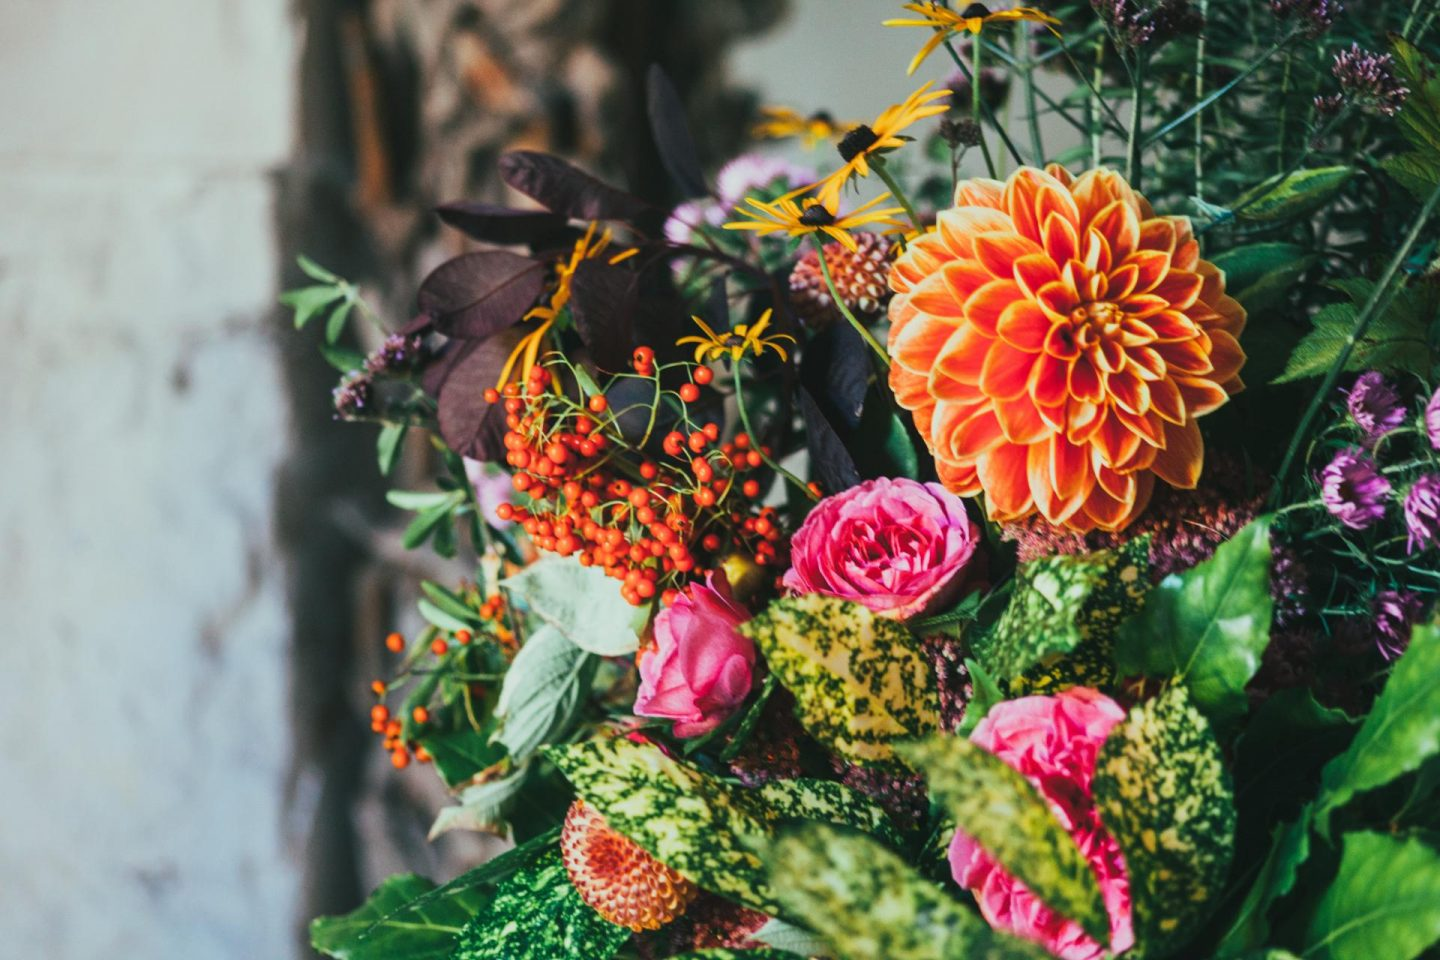 Choosing blooms with birth flowers